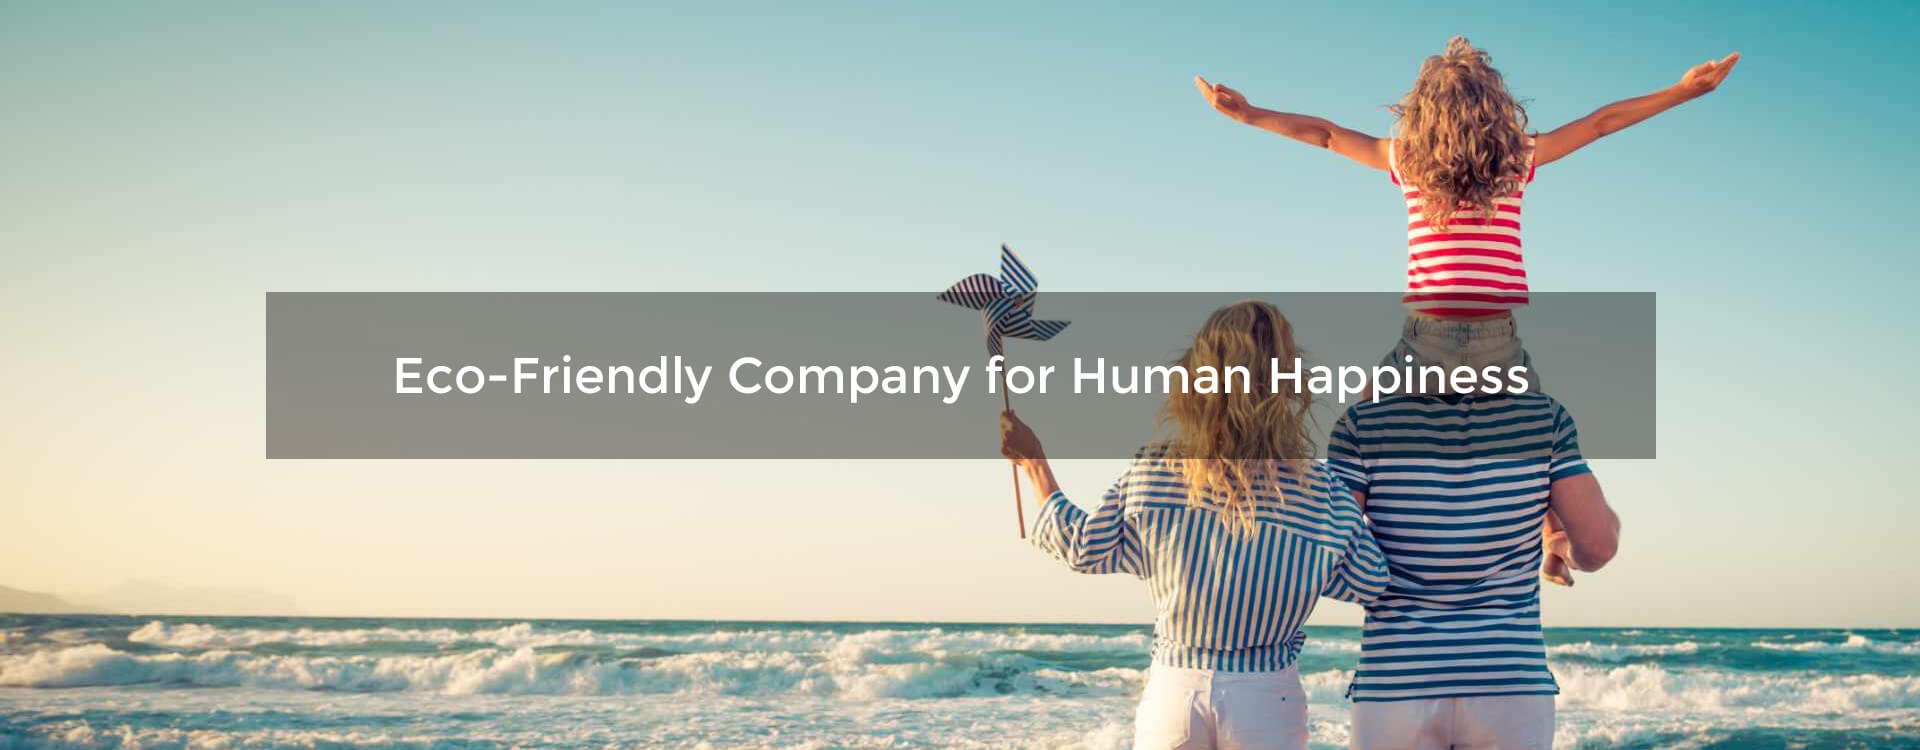 Eco-Friendly Company for Human Happiness